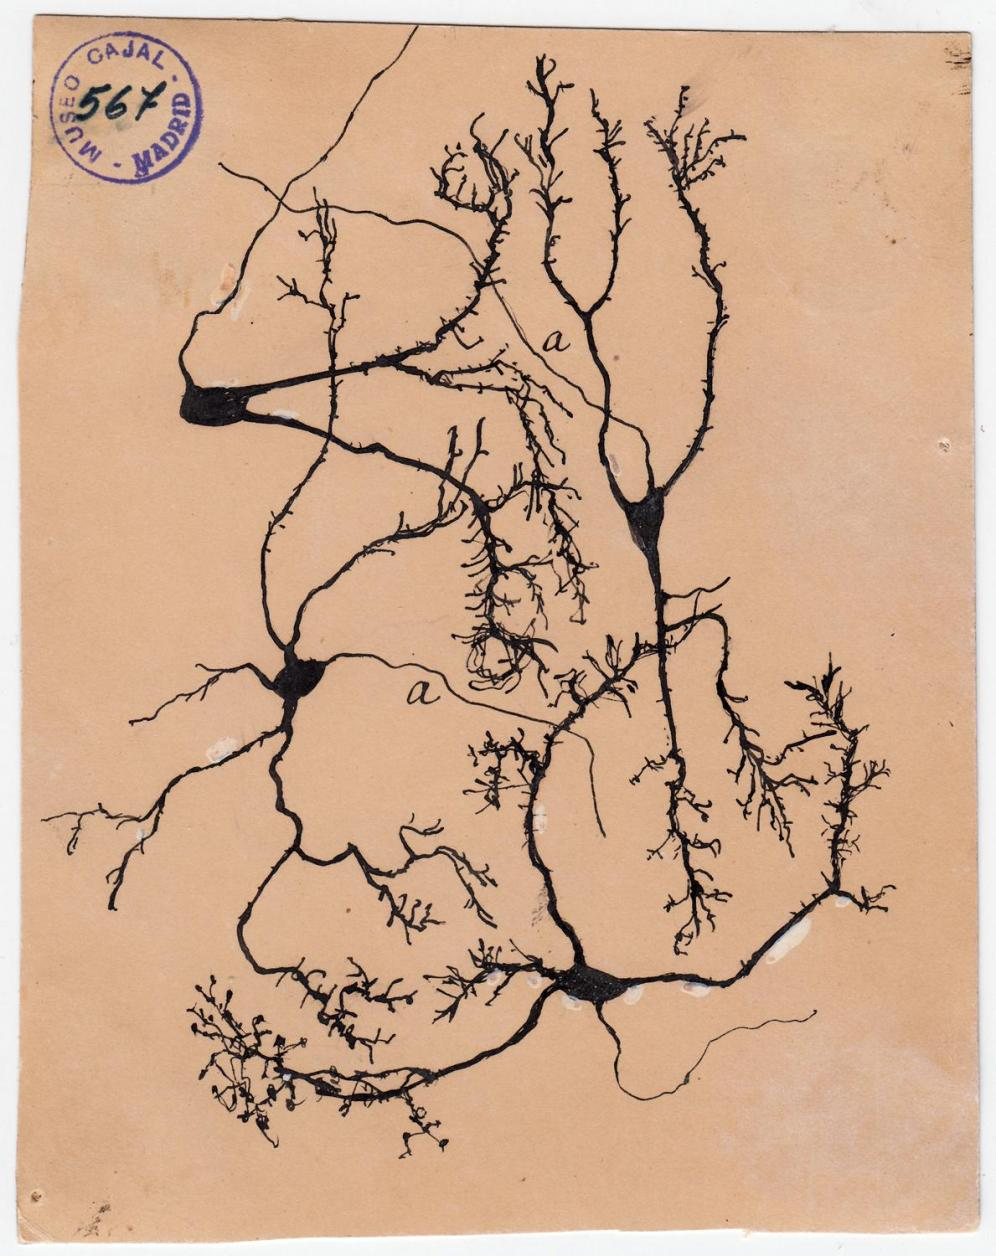 Golgi Stains were the reason Ramon y Cajal thought of the Neuron Doctrine.